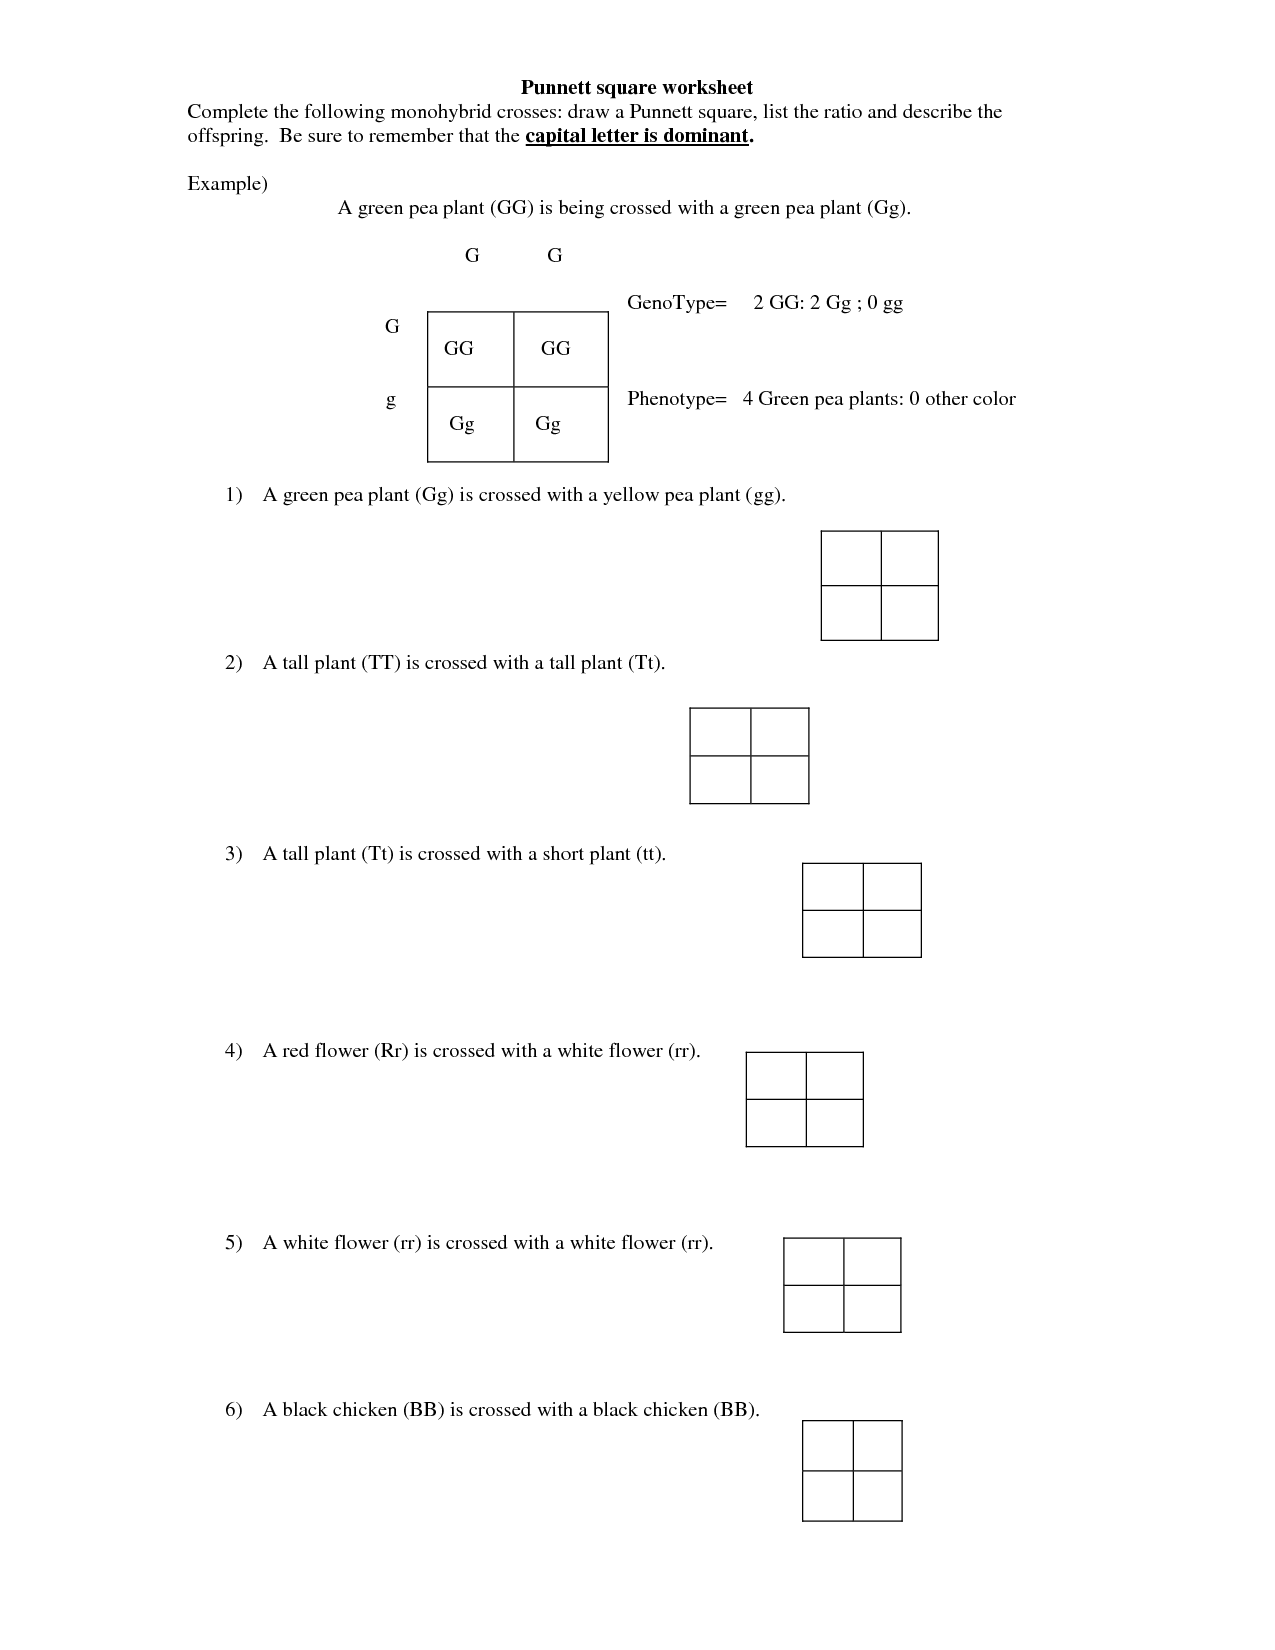 punnett square worksheet worksheets releaseboard free. Black Bedroom Furniture Sets. Home Design Ideas